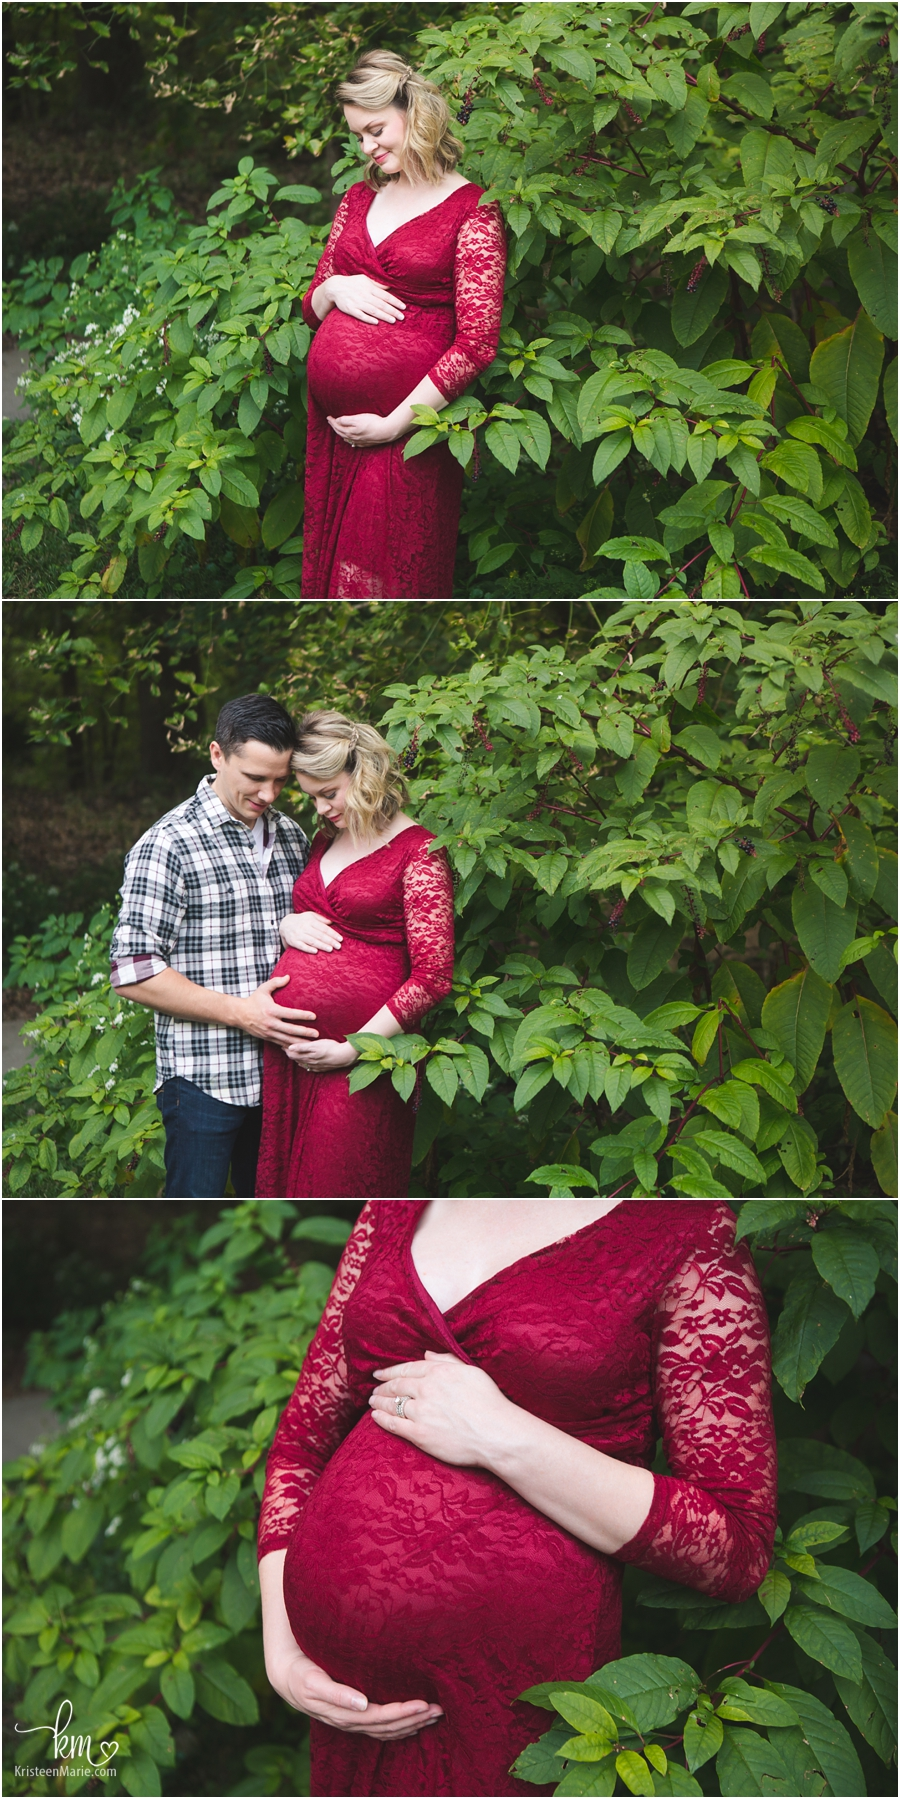 studnning outdoor maternity photography - maternity pictures in red dress floor length